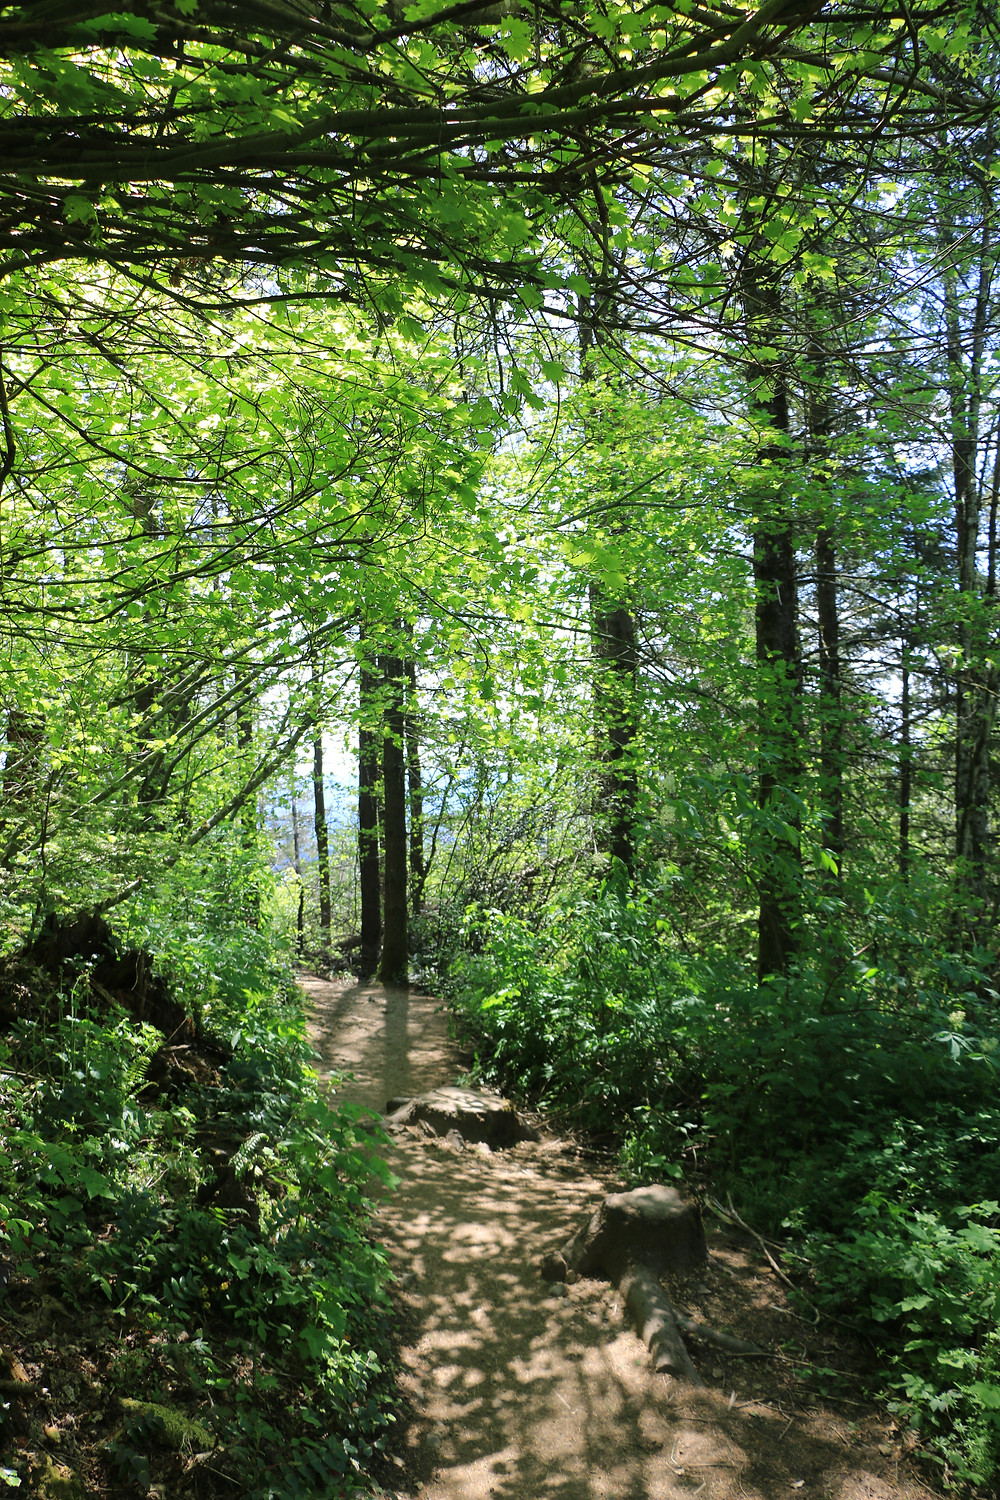 Hiking trail under green canopy of trees